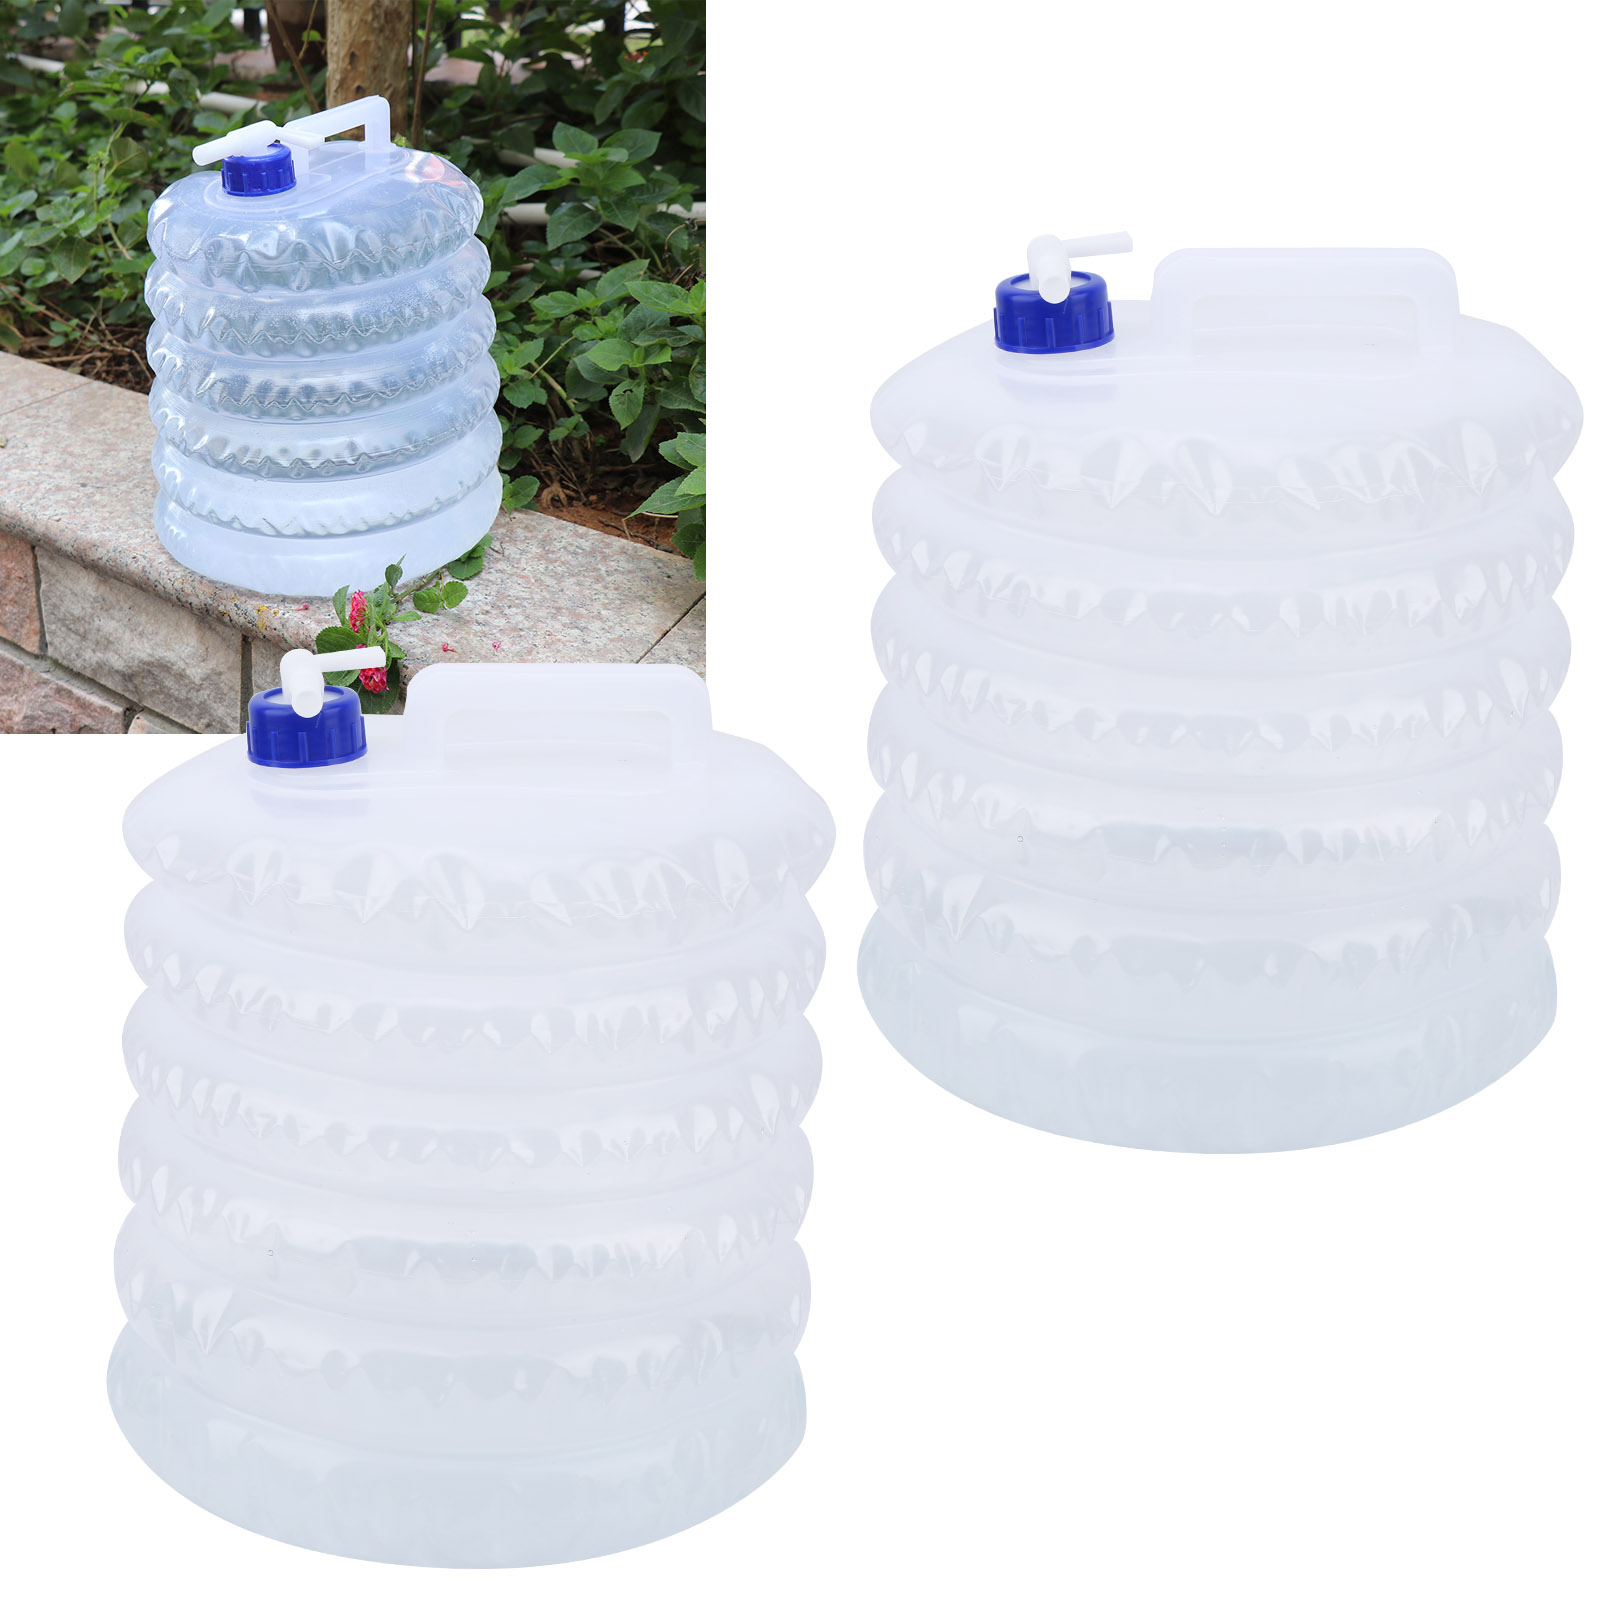 Details about  /Collapsible Water Container 15L Maximum Volume Water Storage Container For Camps